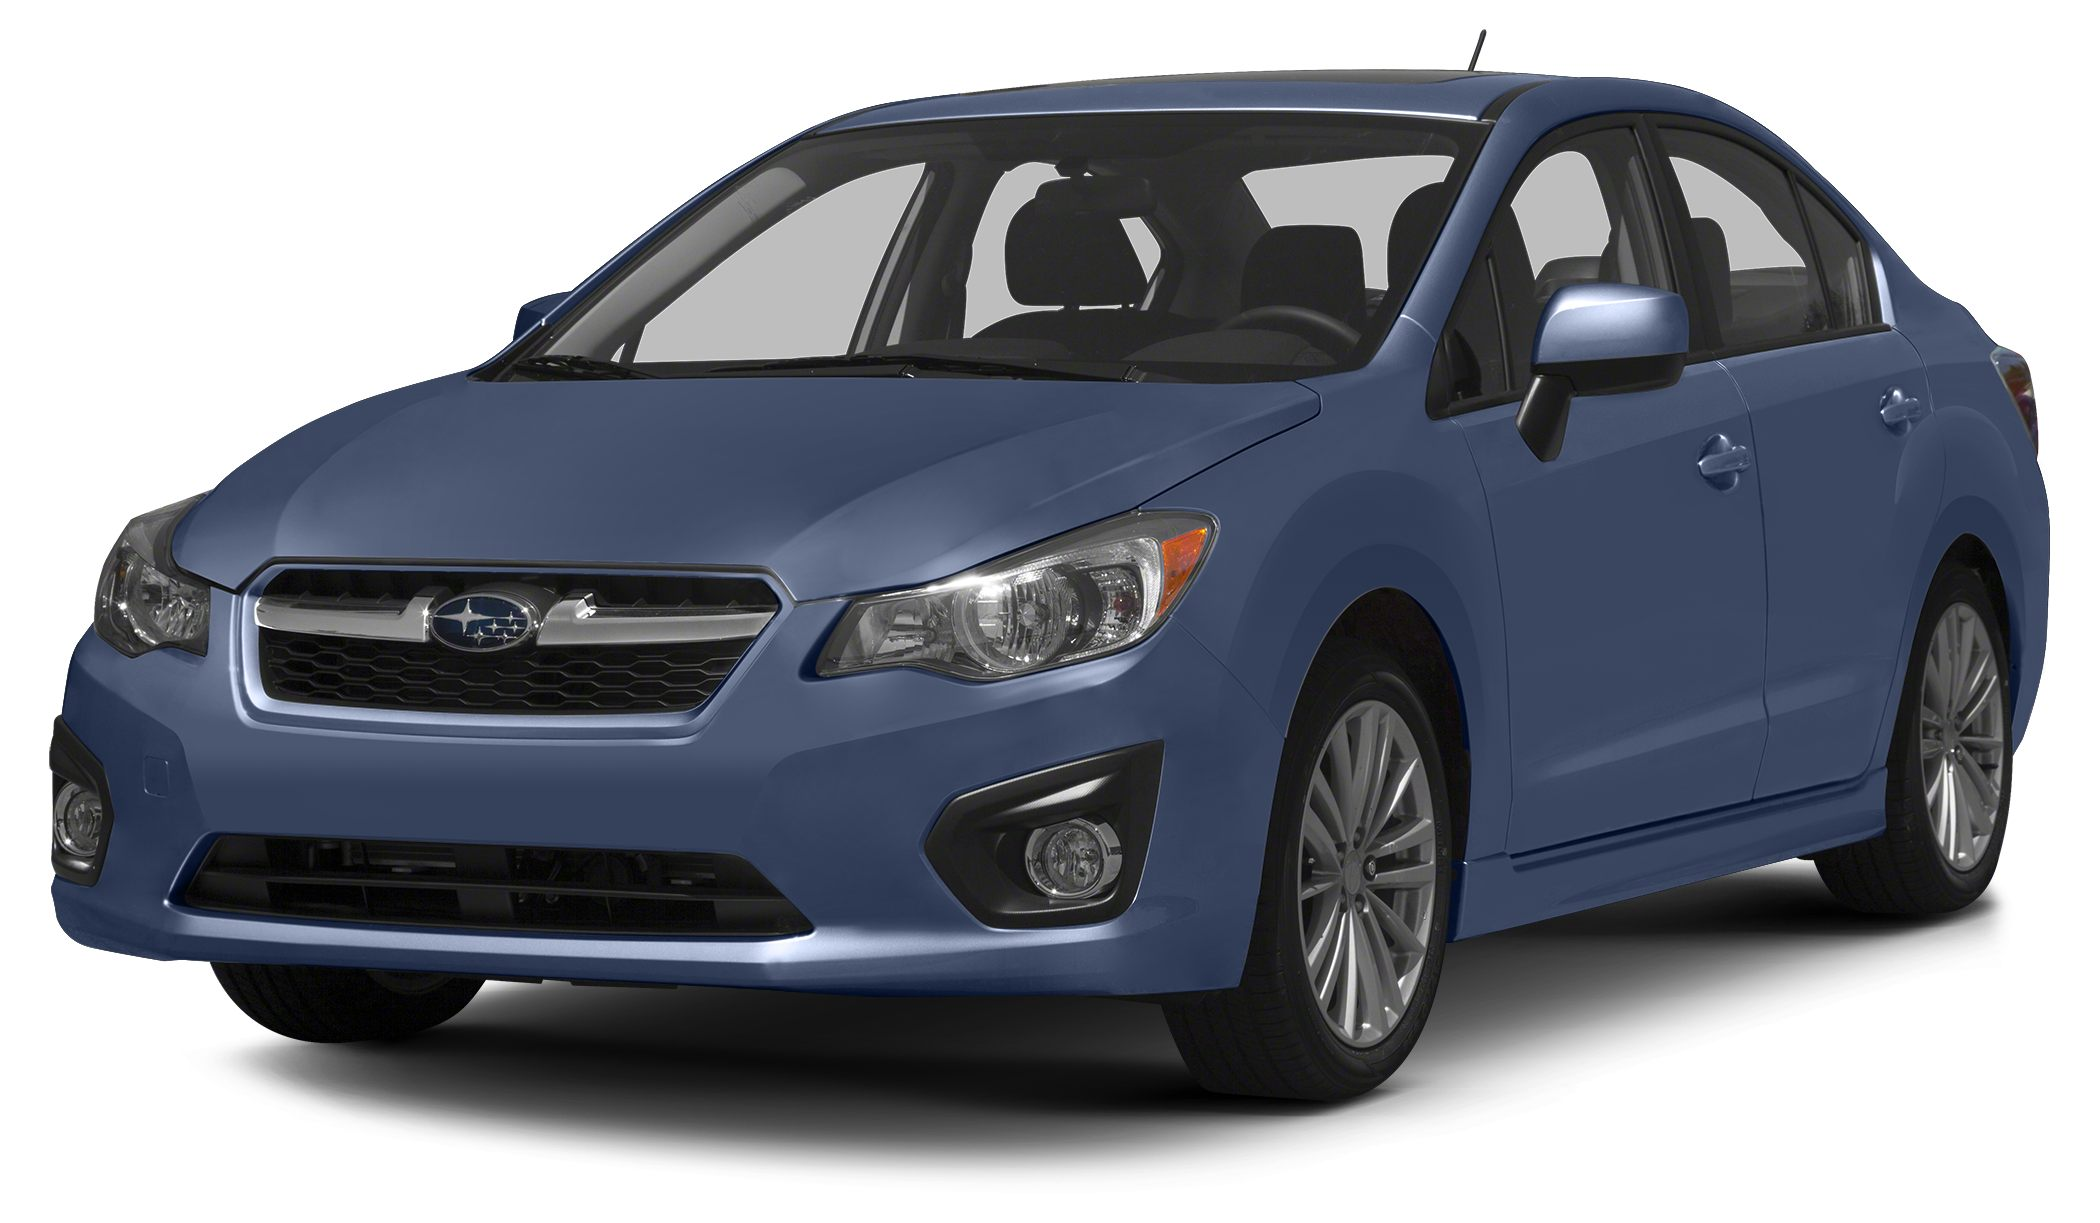 2013 Subaru Impreza 20i WE SELL OUR VEHICLES AT WHOLESALE PRICES AND STAND BEHIND OUR CARS